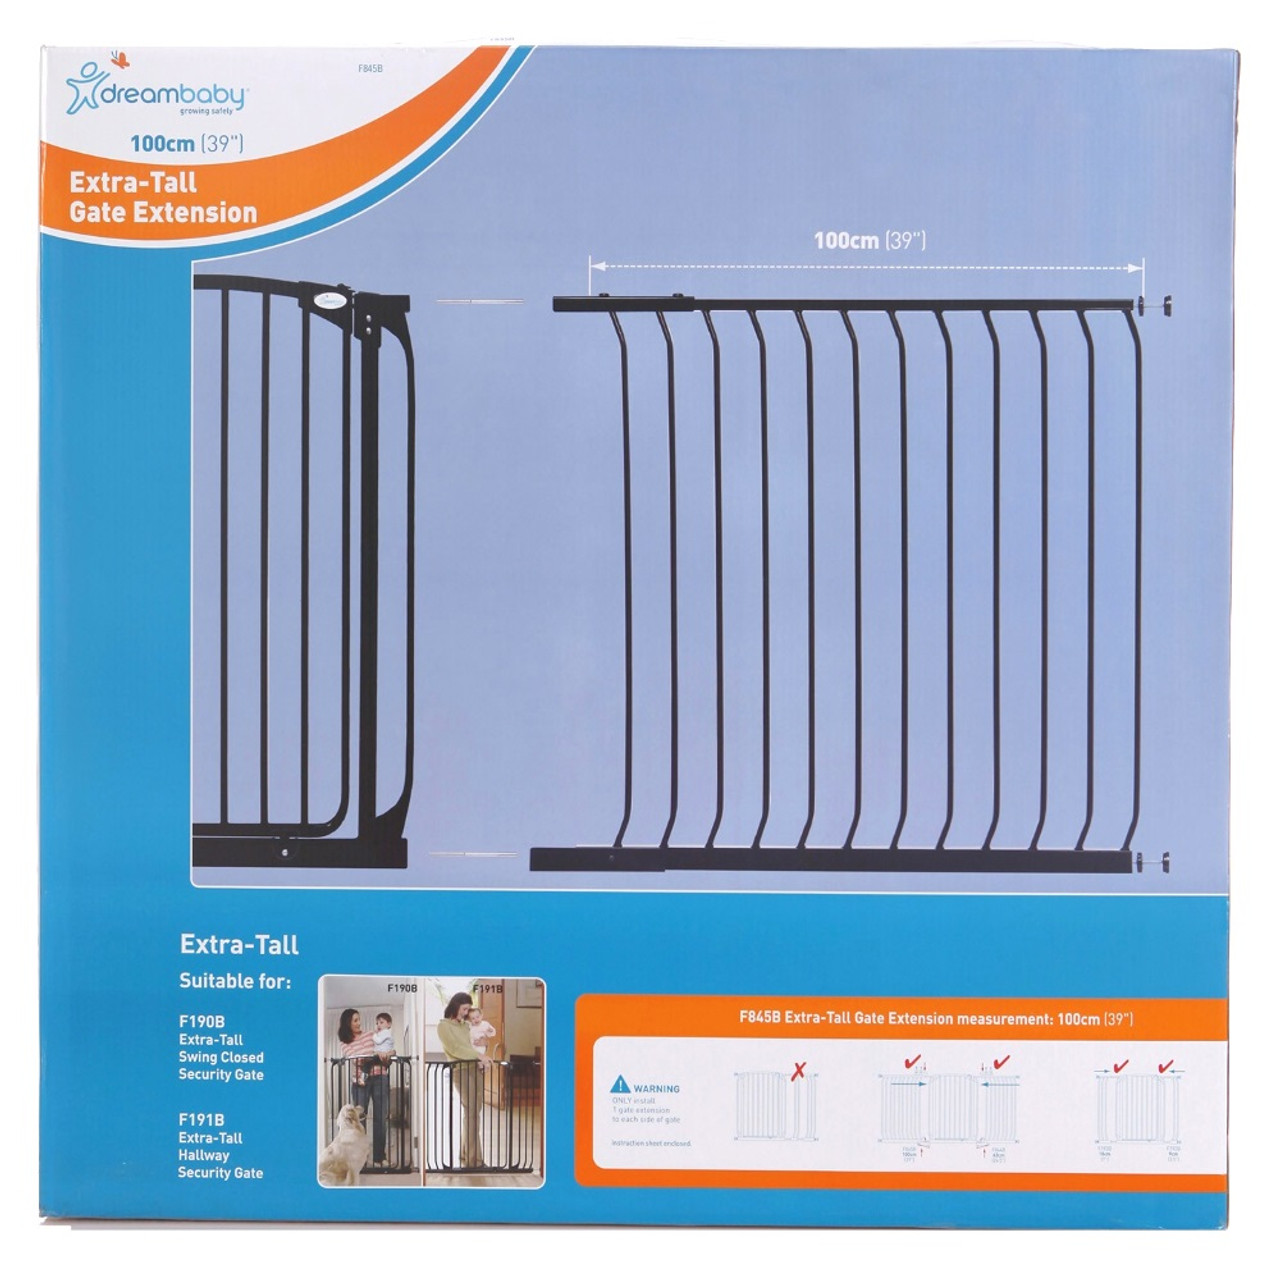 Dreambaby Chelsea 100cm Tall Gate Extension at Baby Barn Discounts Dreambaby Chelsea Tall Gates are 1m high and provide greater security and peace of mind.